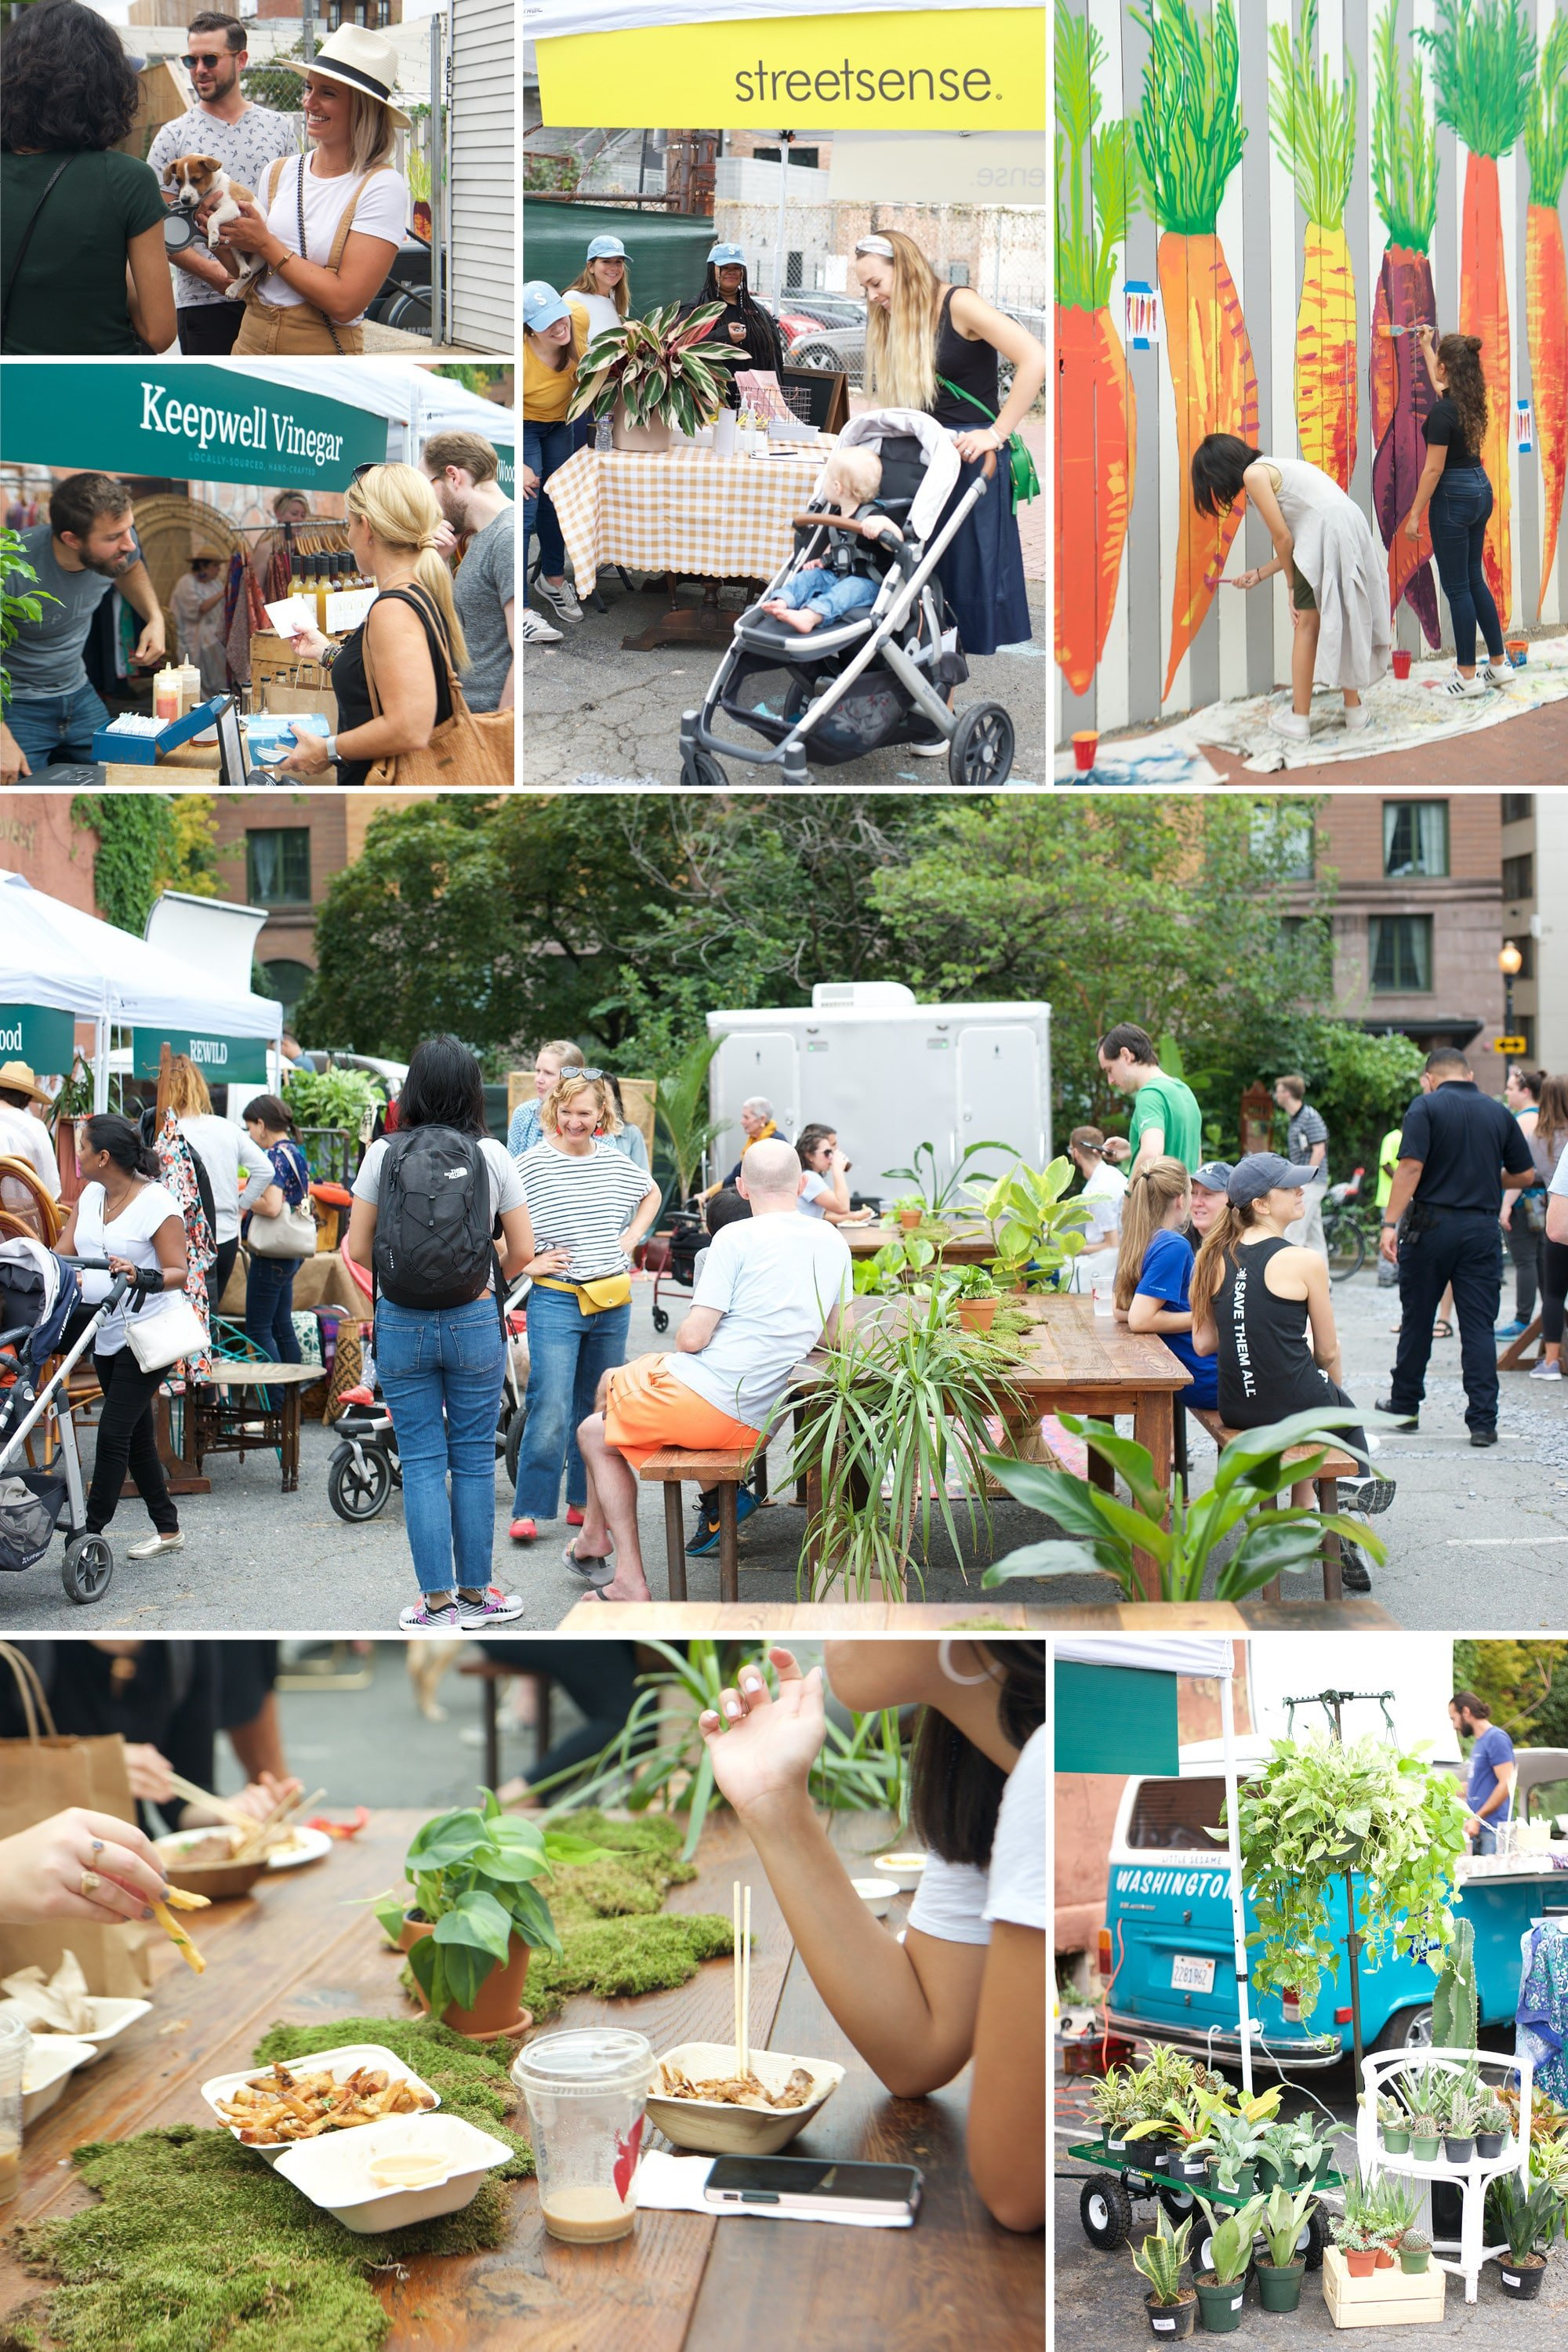 Collection of photos from Streetmartket in Blagden Alley by Streetsense